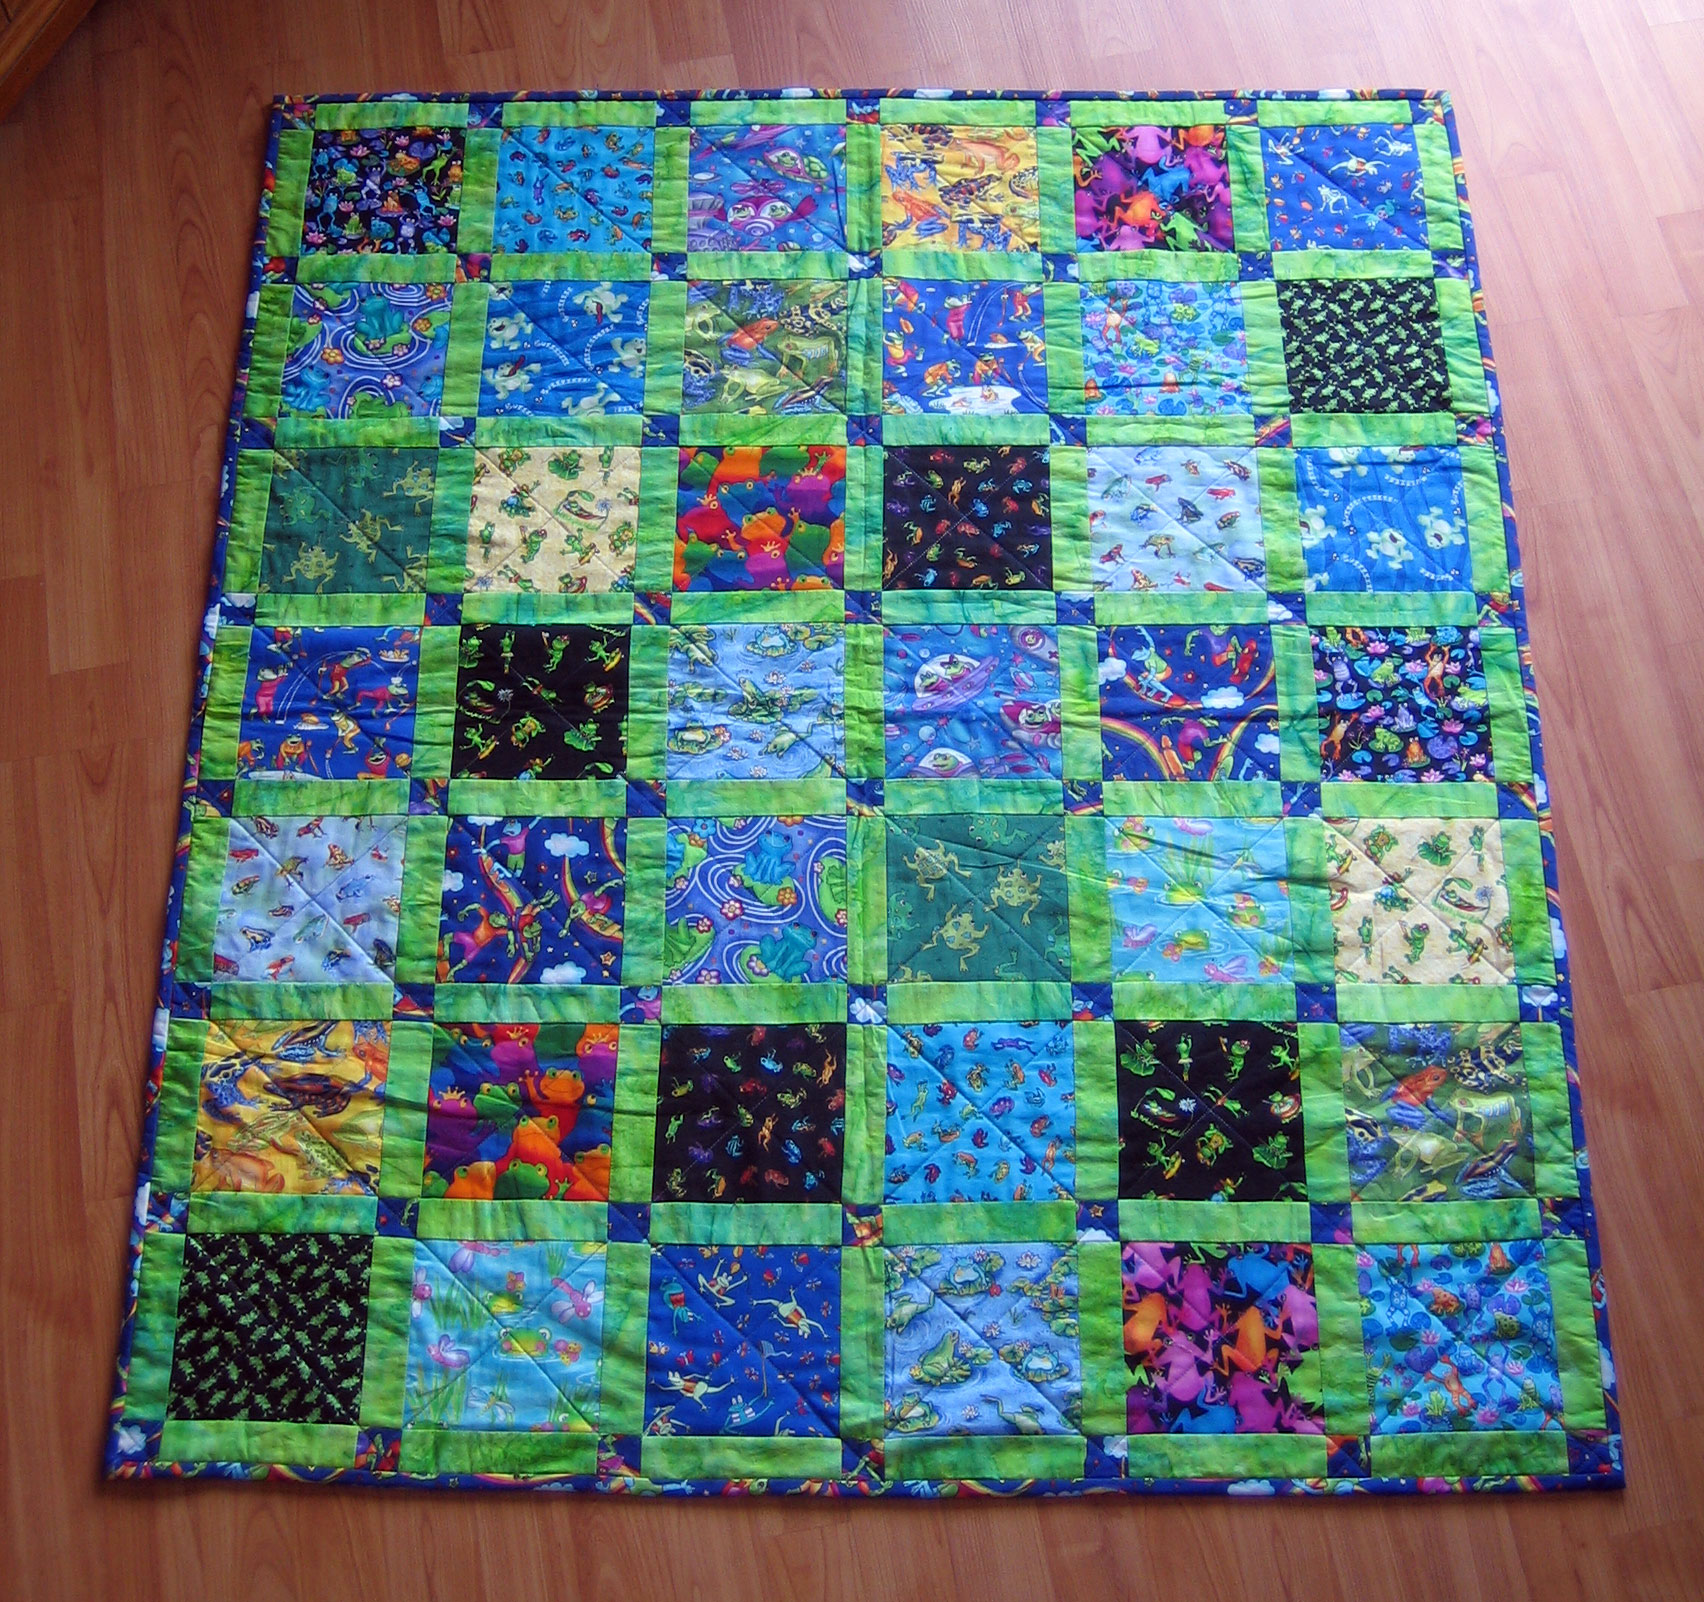 Skateboarding frogs quilt